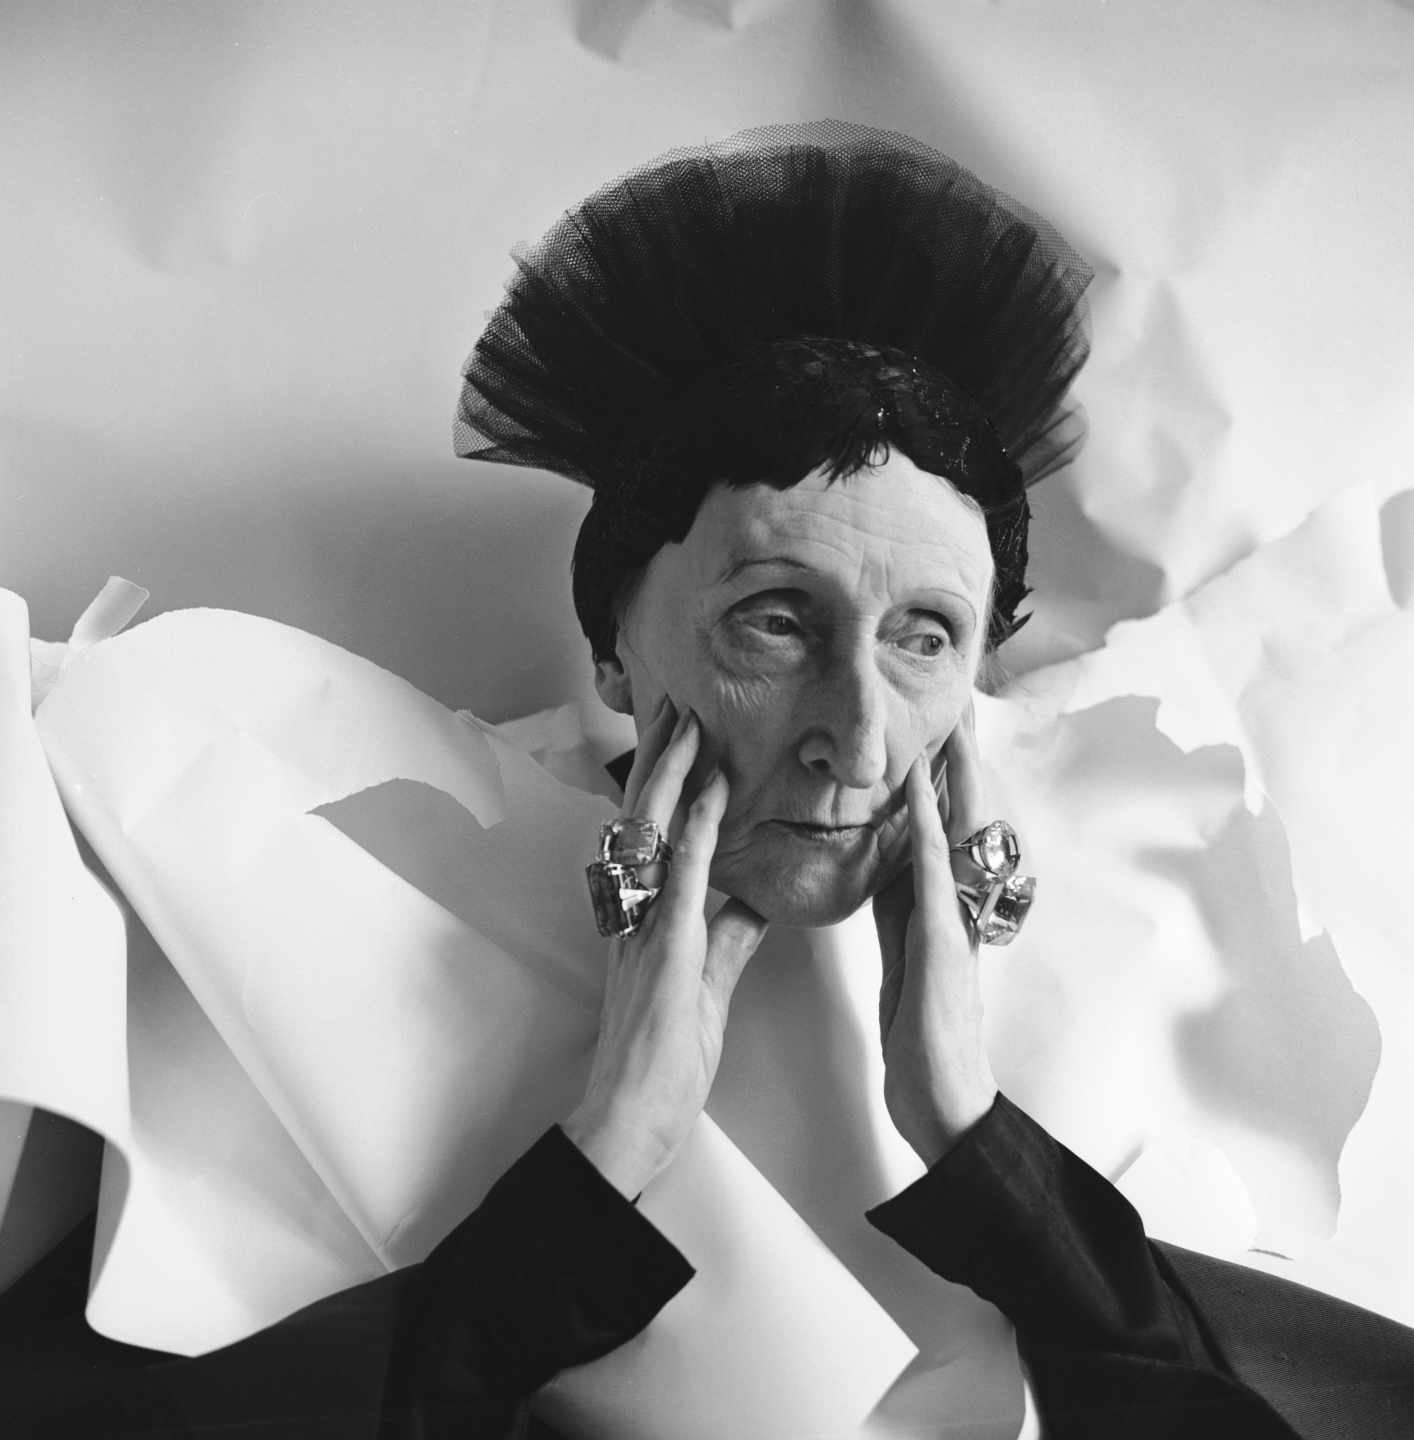 Edith Sitwell, 1962 ©The Cecil Beaton Studio Archive at Sotheby's